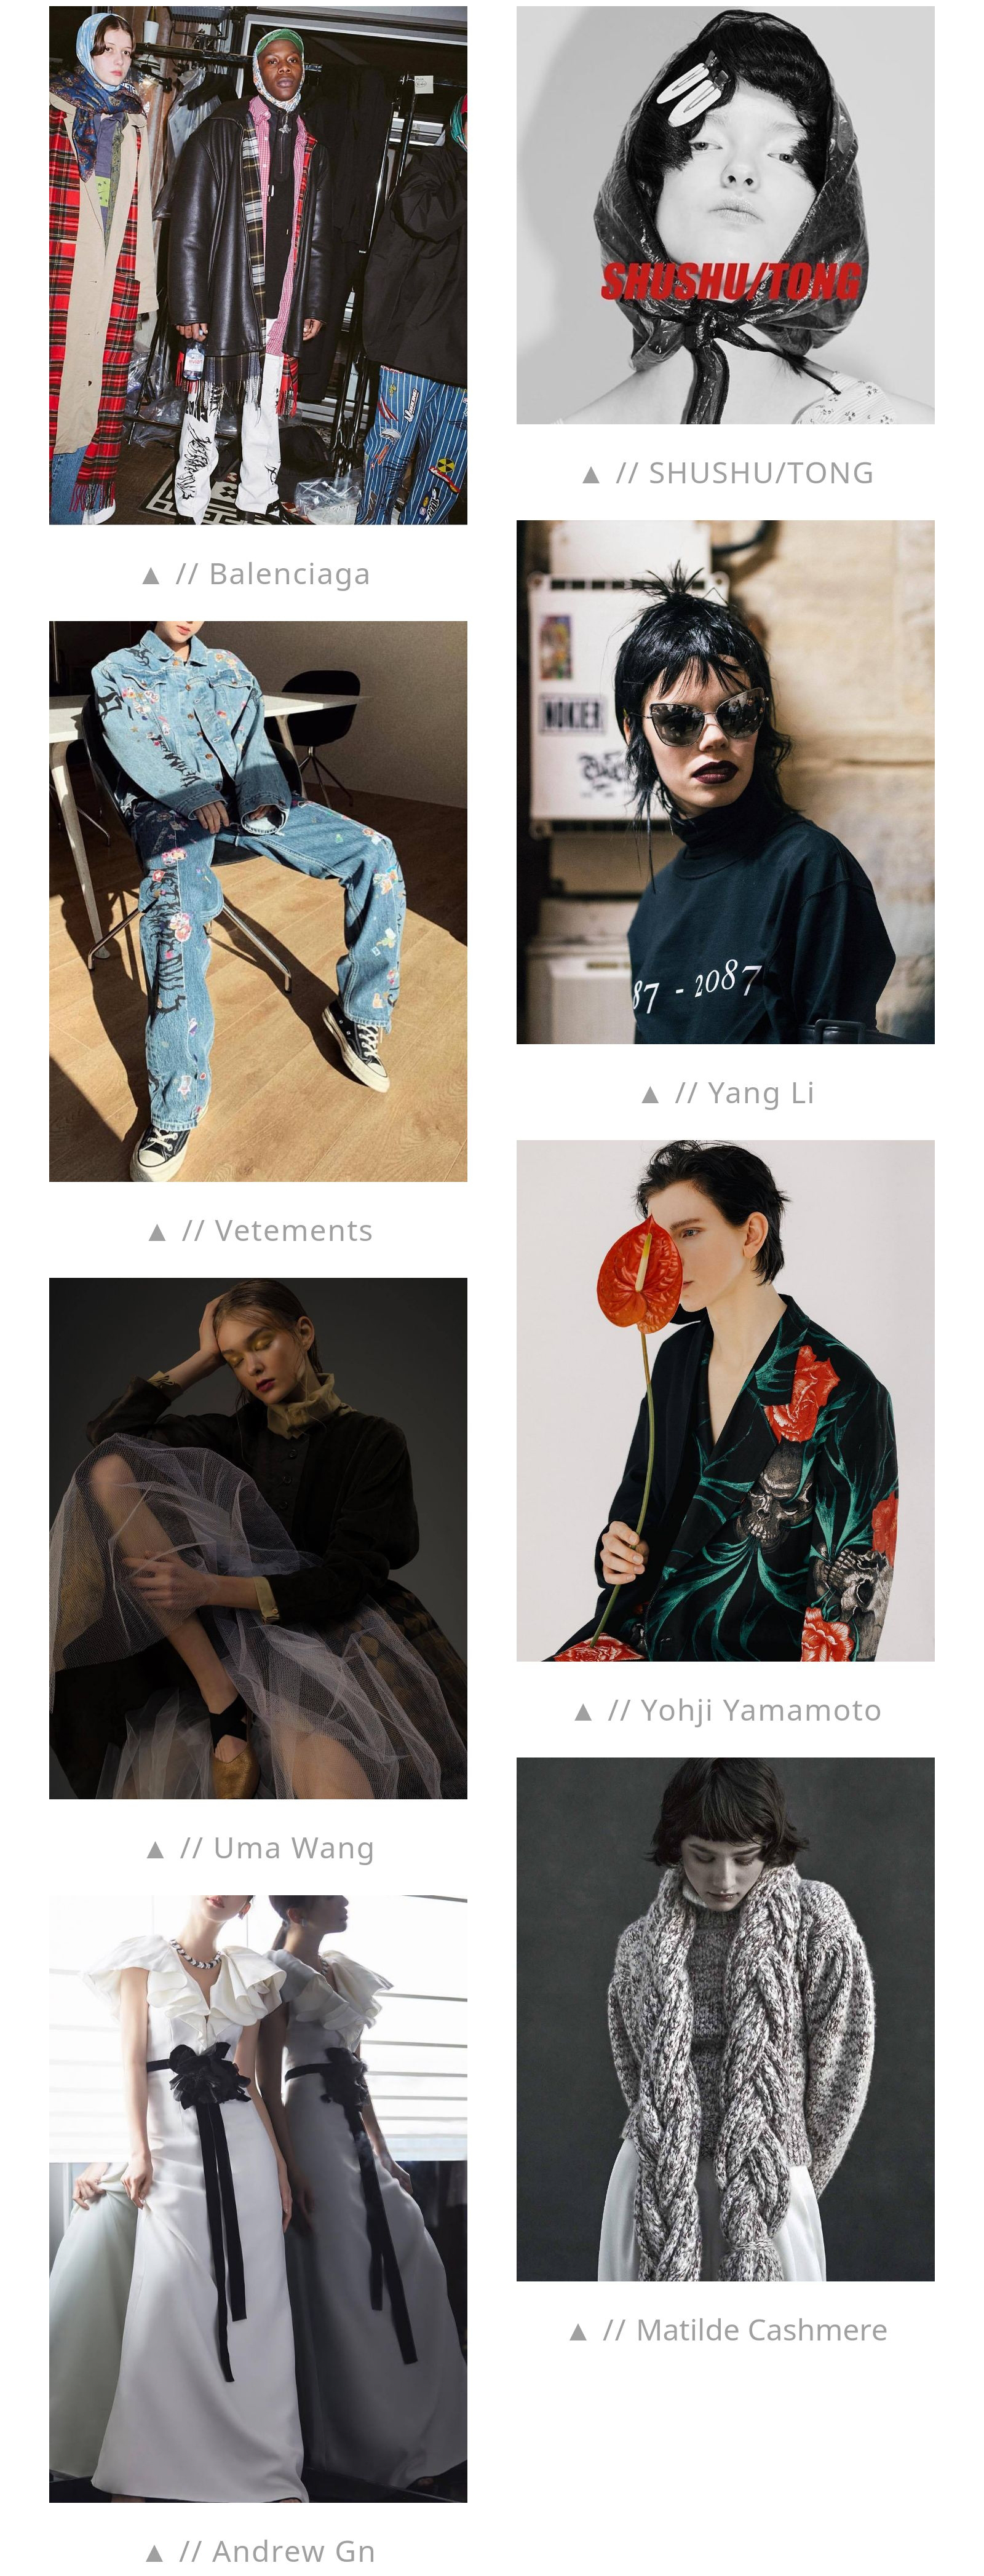 Balenciaga / COMME des GARÇONS / Off-White / Loewe / Vetements / Chloé / Valentino / Yohji Yamamoto / Rick Owens / Neil Barrett / Balmain / Moschino / mastermind WORLD / Unravel Project / Faith Connexion / Alyx / Christian Dada / Fear of God / Palm Angels...